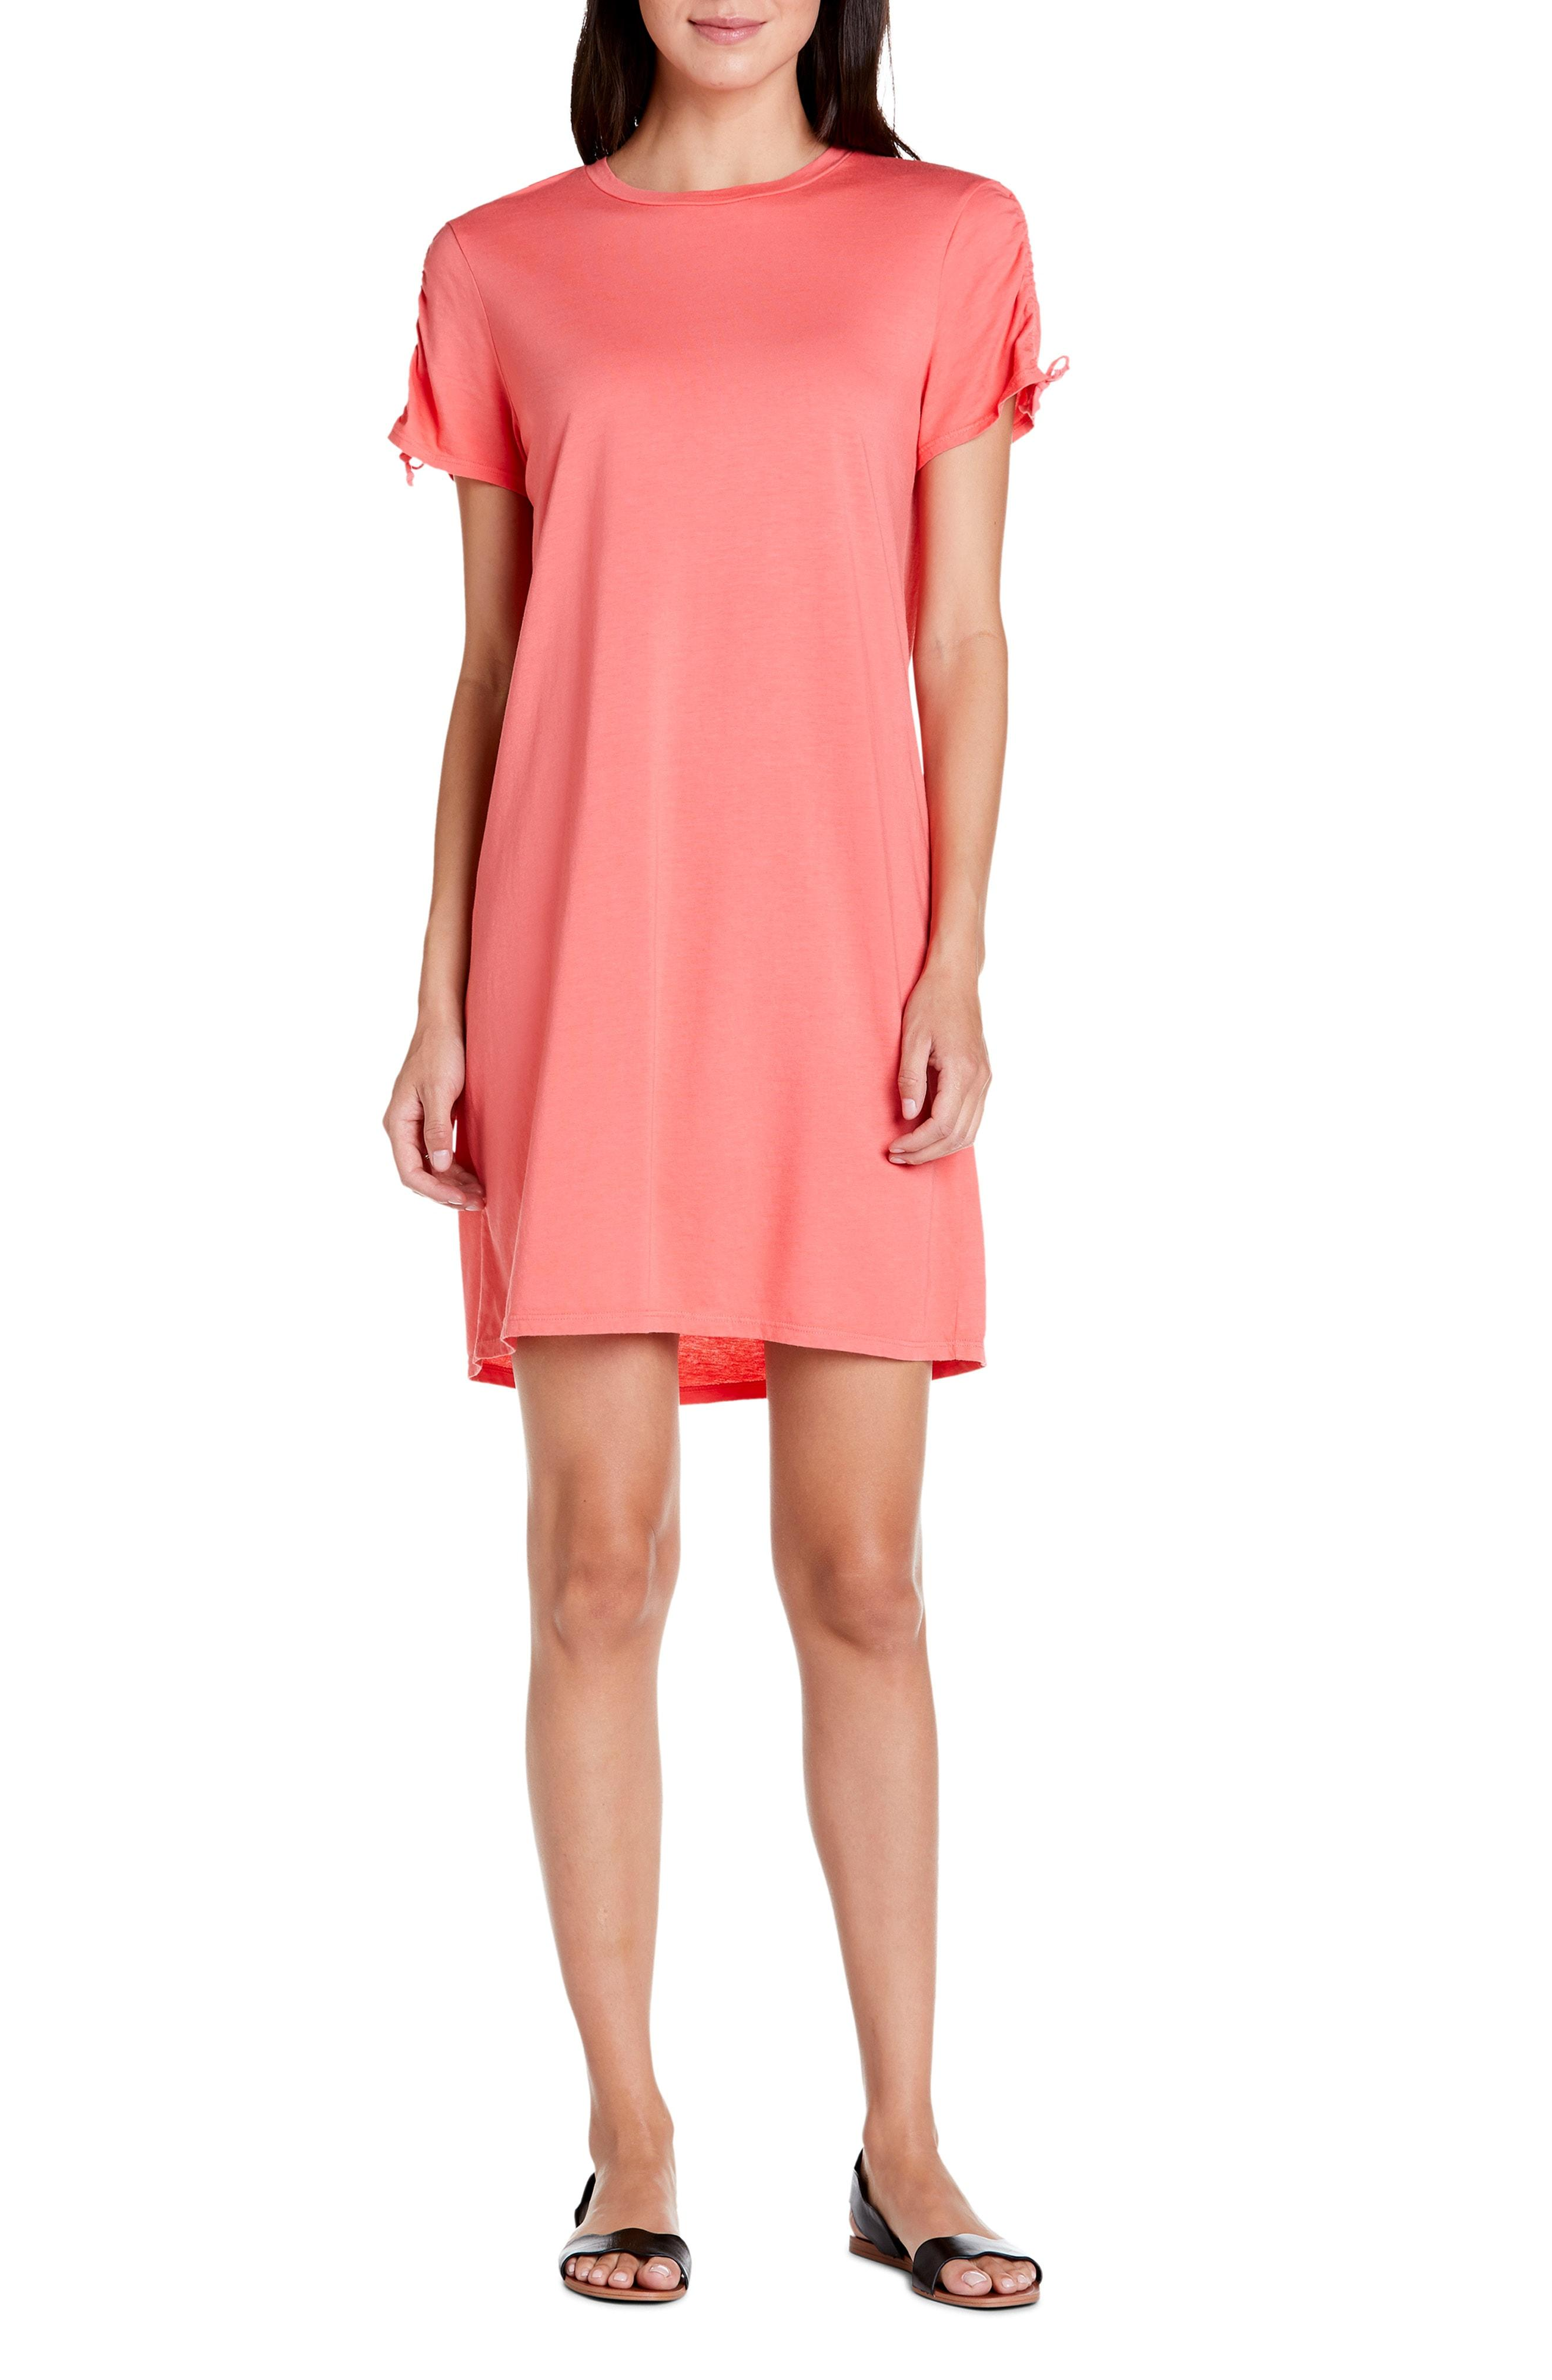 c6d012a051fc Lyst - Michael Stars Zoie Ruched Sleeve T-shirt Dress in Pink